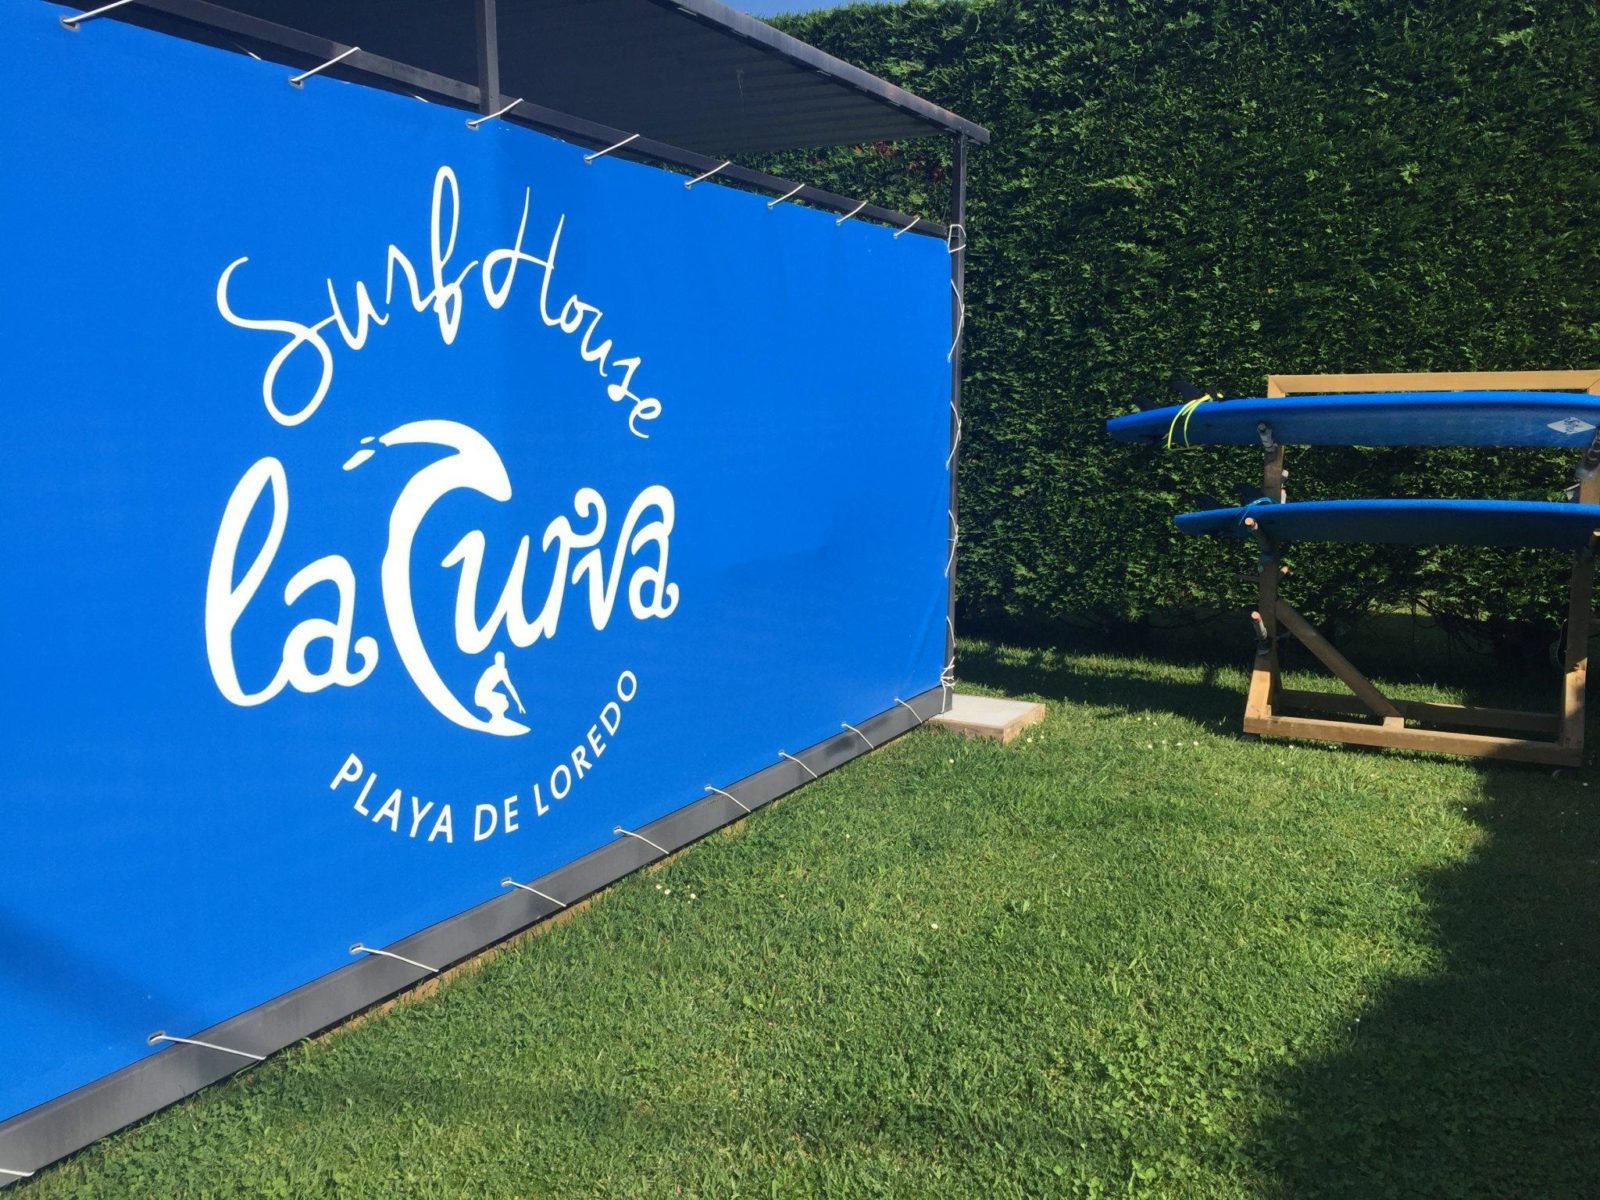 Learning to Surf at Escuela de Surf La Curva in Spain